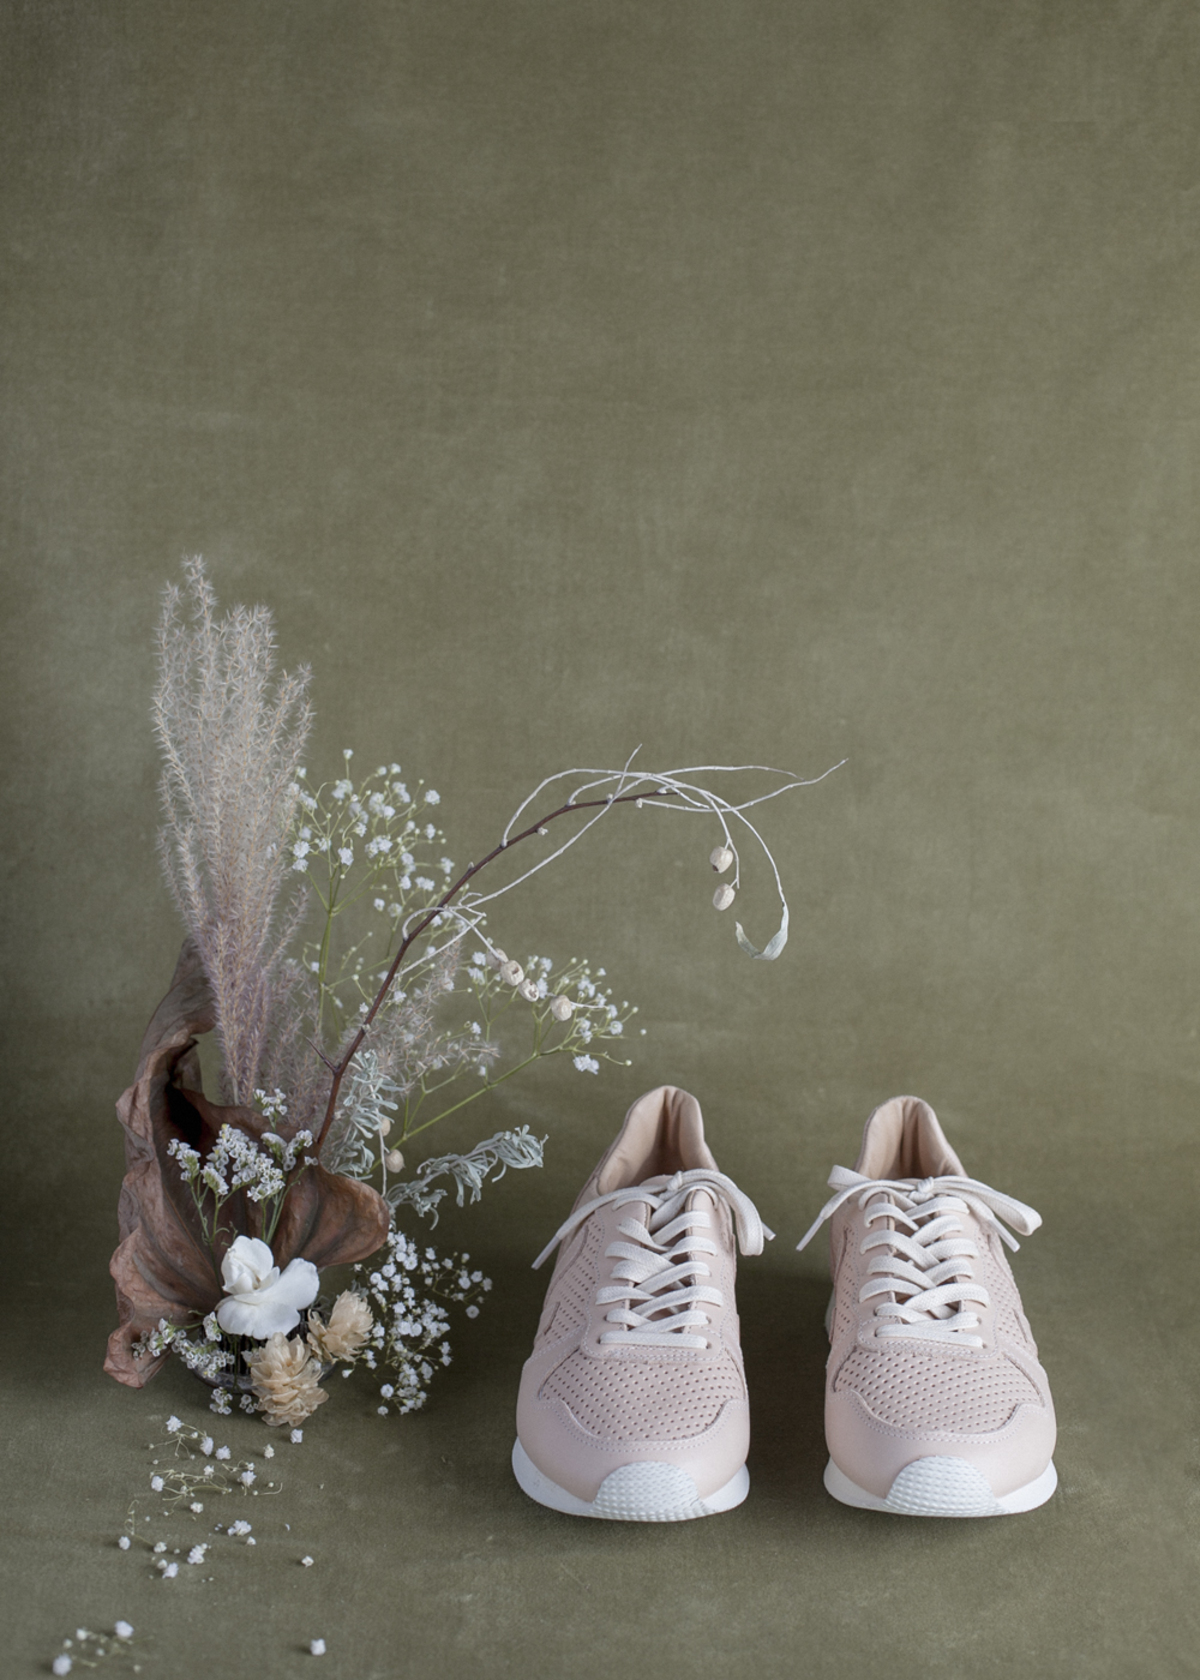 Wedding Gift List Virgin Holidays : Veja Holiday Perforated SneakerVirgin from Umeboshi Garmentory